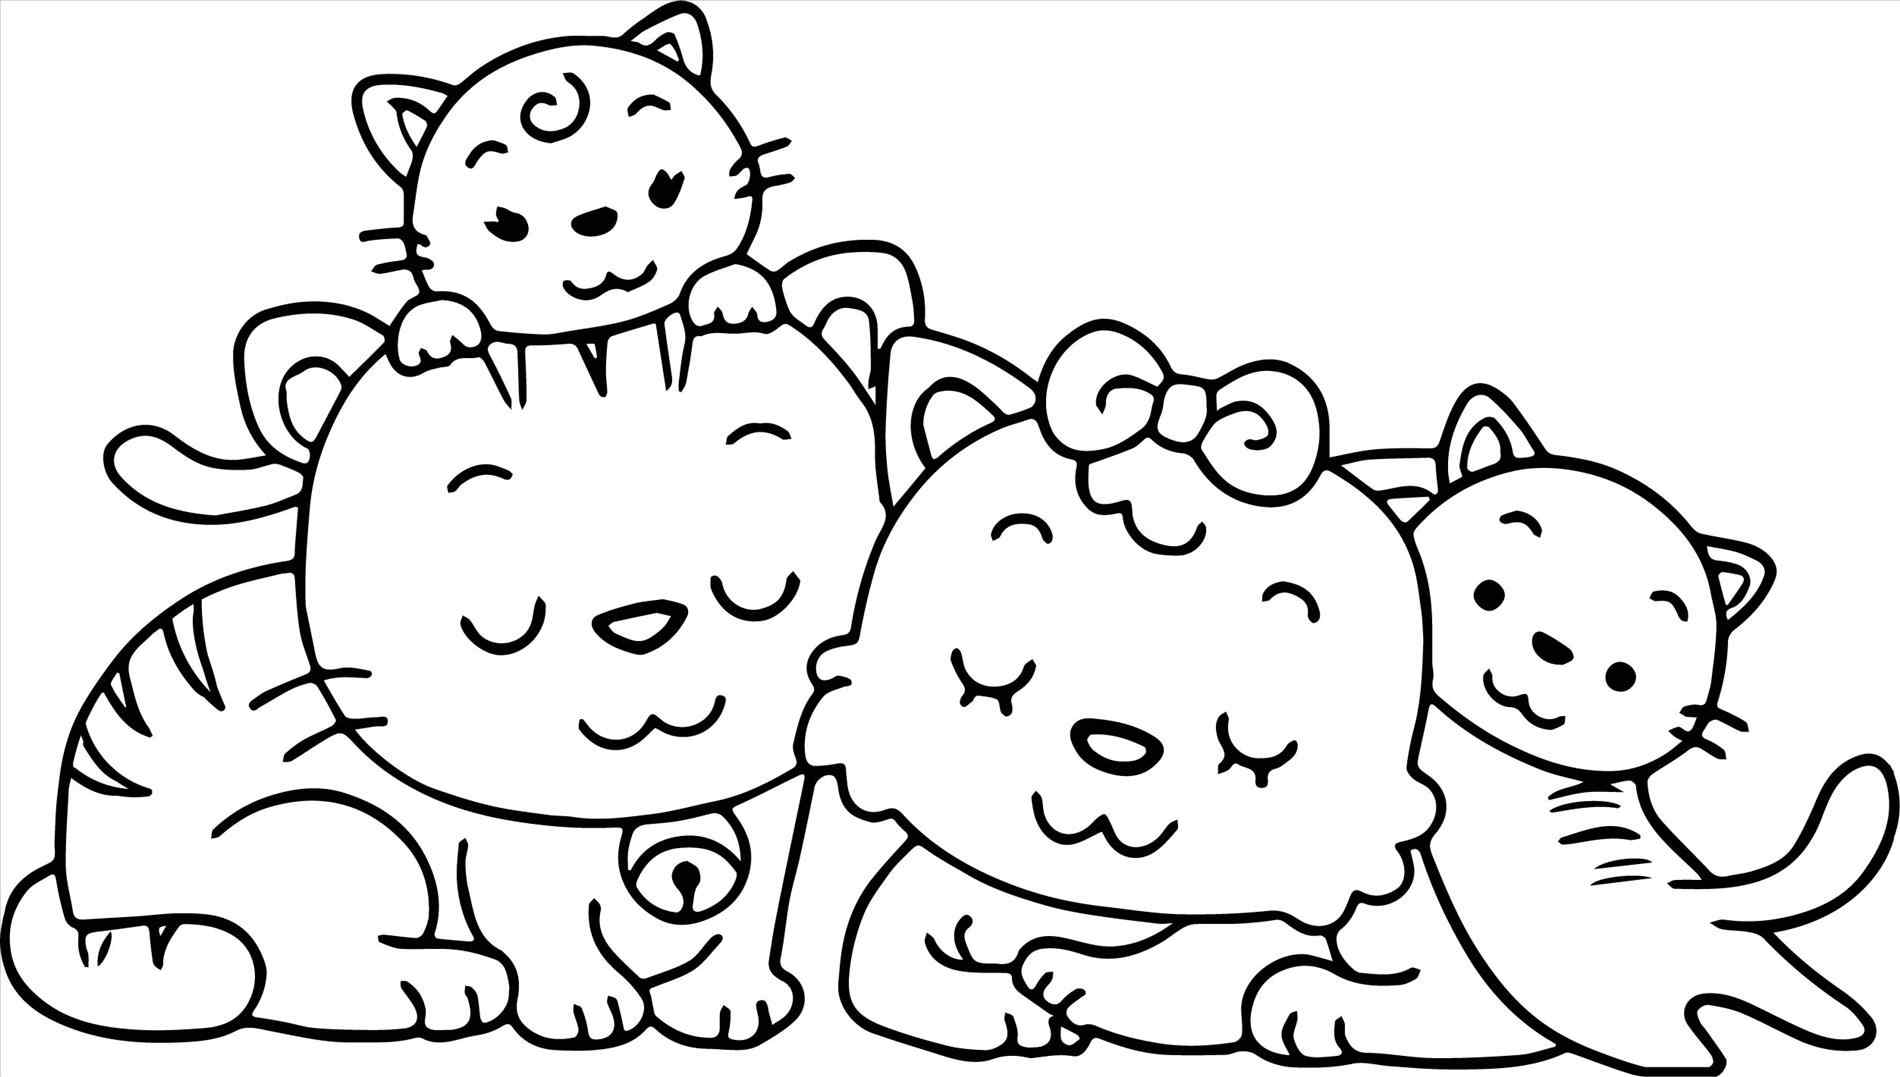 1900x1077 Gingerbread Family Coloring Page Online Coloring Printable